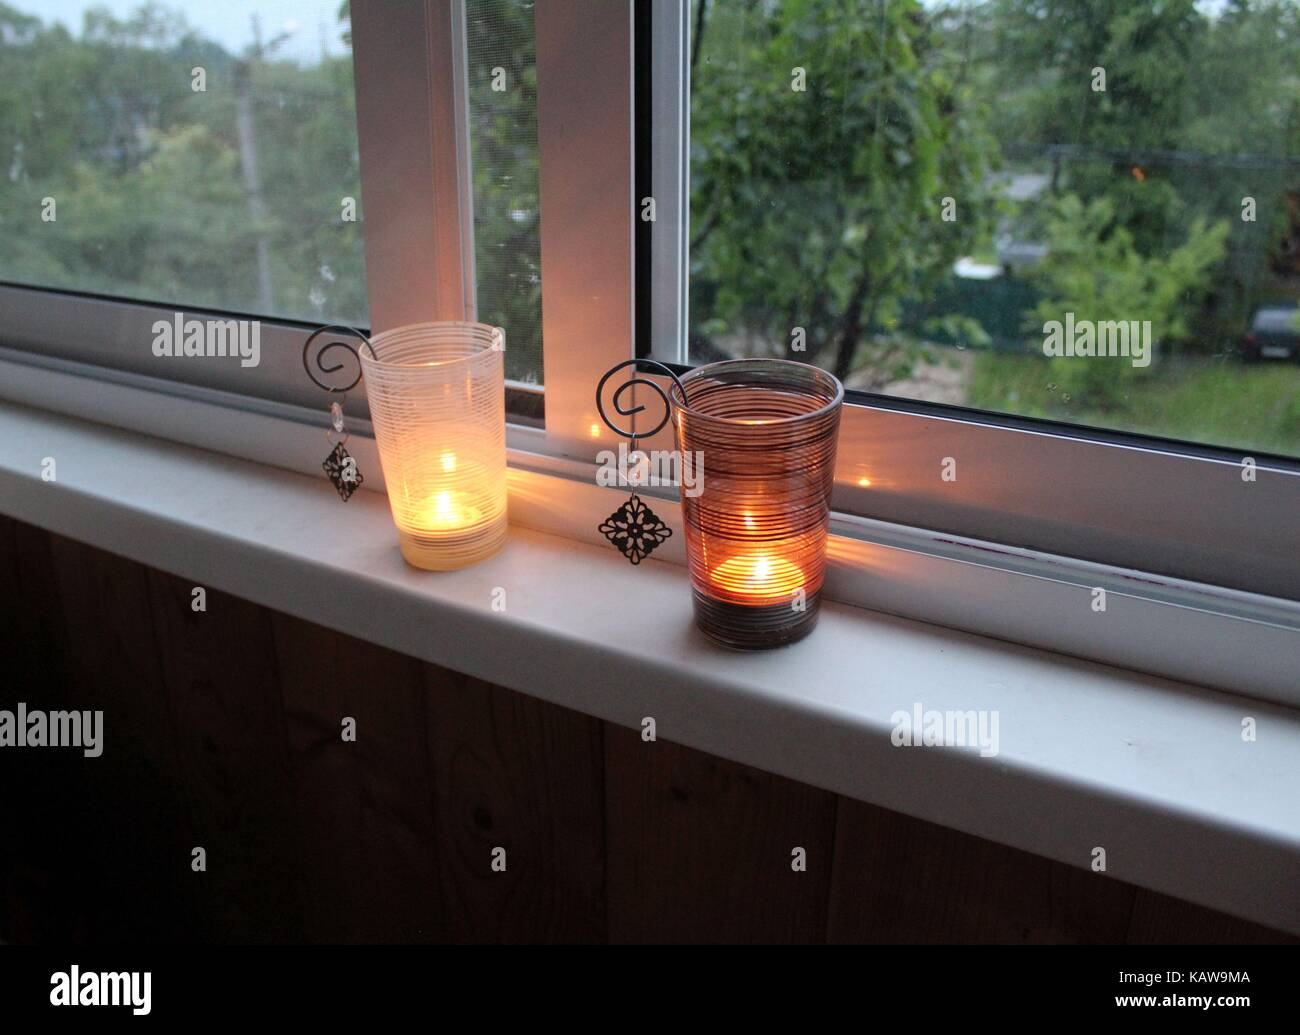 Two candles burning on the windowsill in deep candle holders. - Stock Image